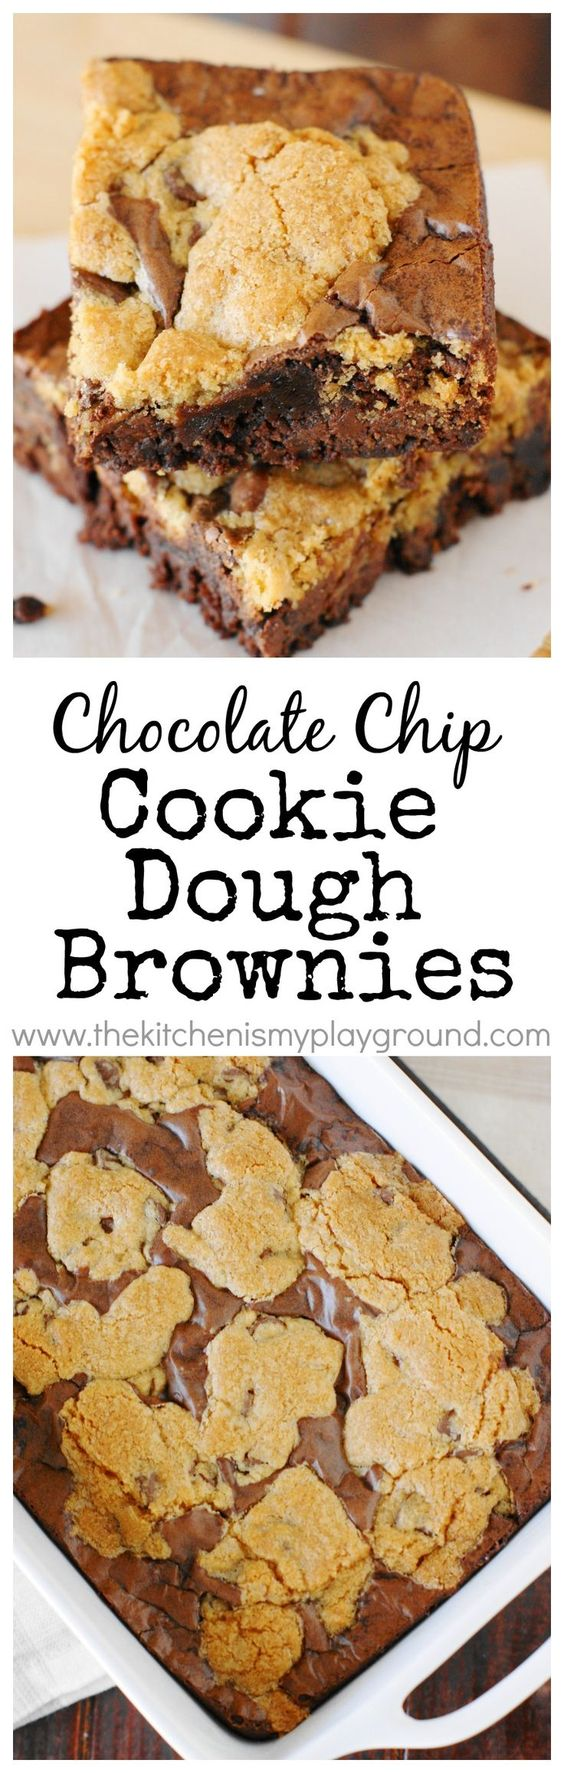 Cookie dough brownies, Chocolate chip cookie dough and Chocolate chip ...